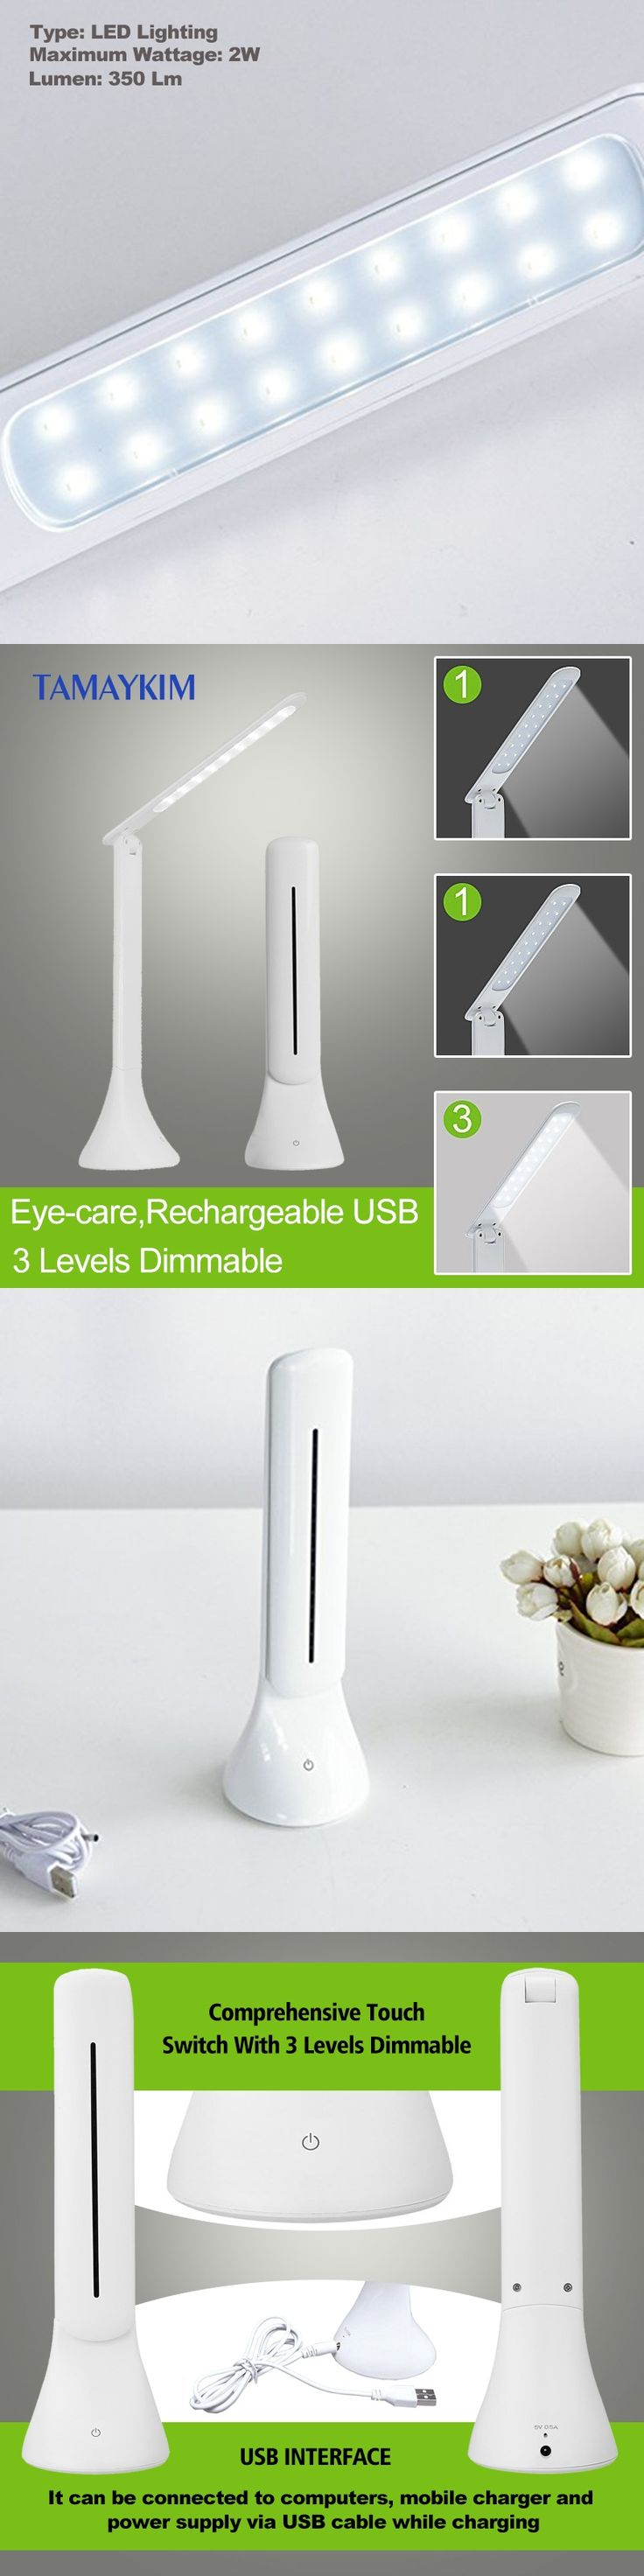 Rechargeable USB Portable Folding Eye-care LED Bedroom Desk Lamp,3 Level Dimmable,Touch Sensitive Control Panel,Cool White Light